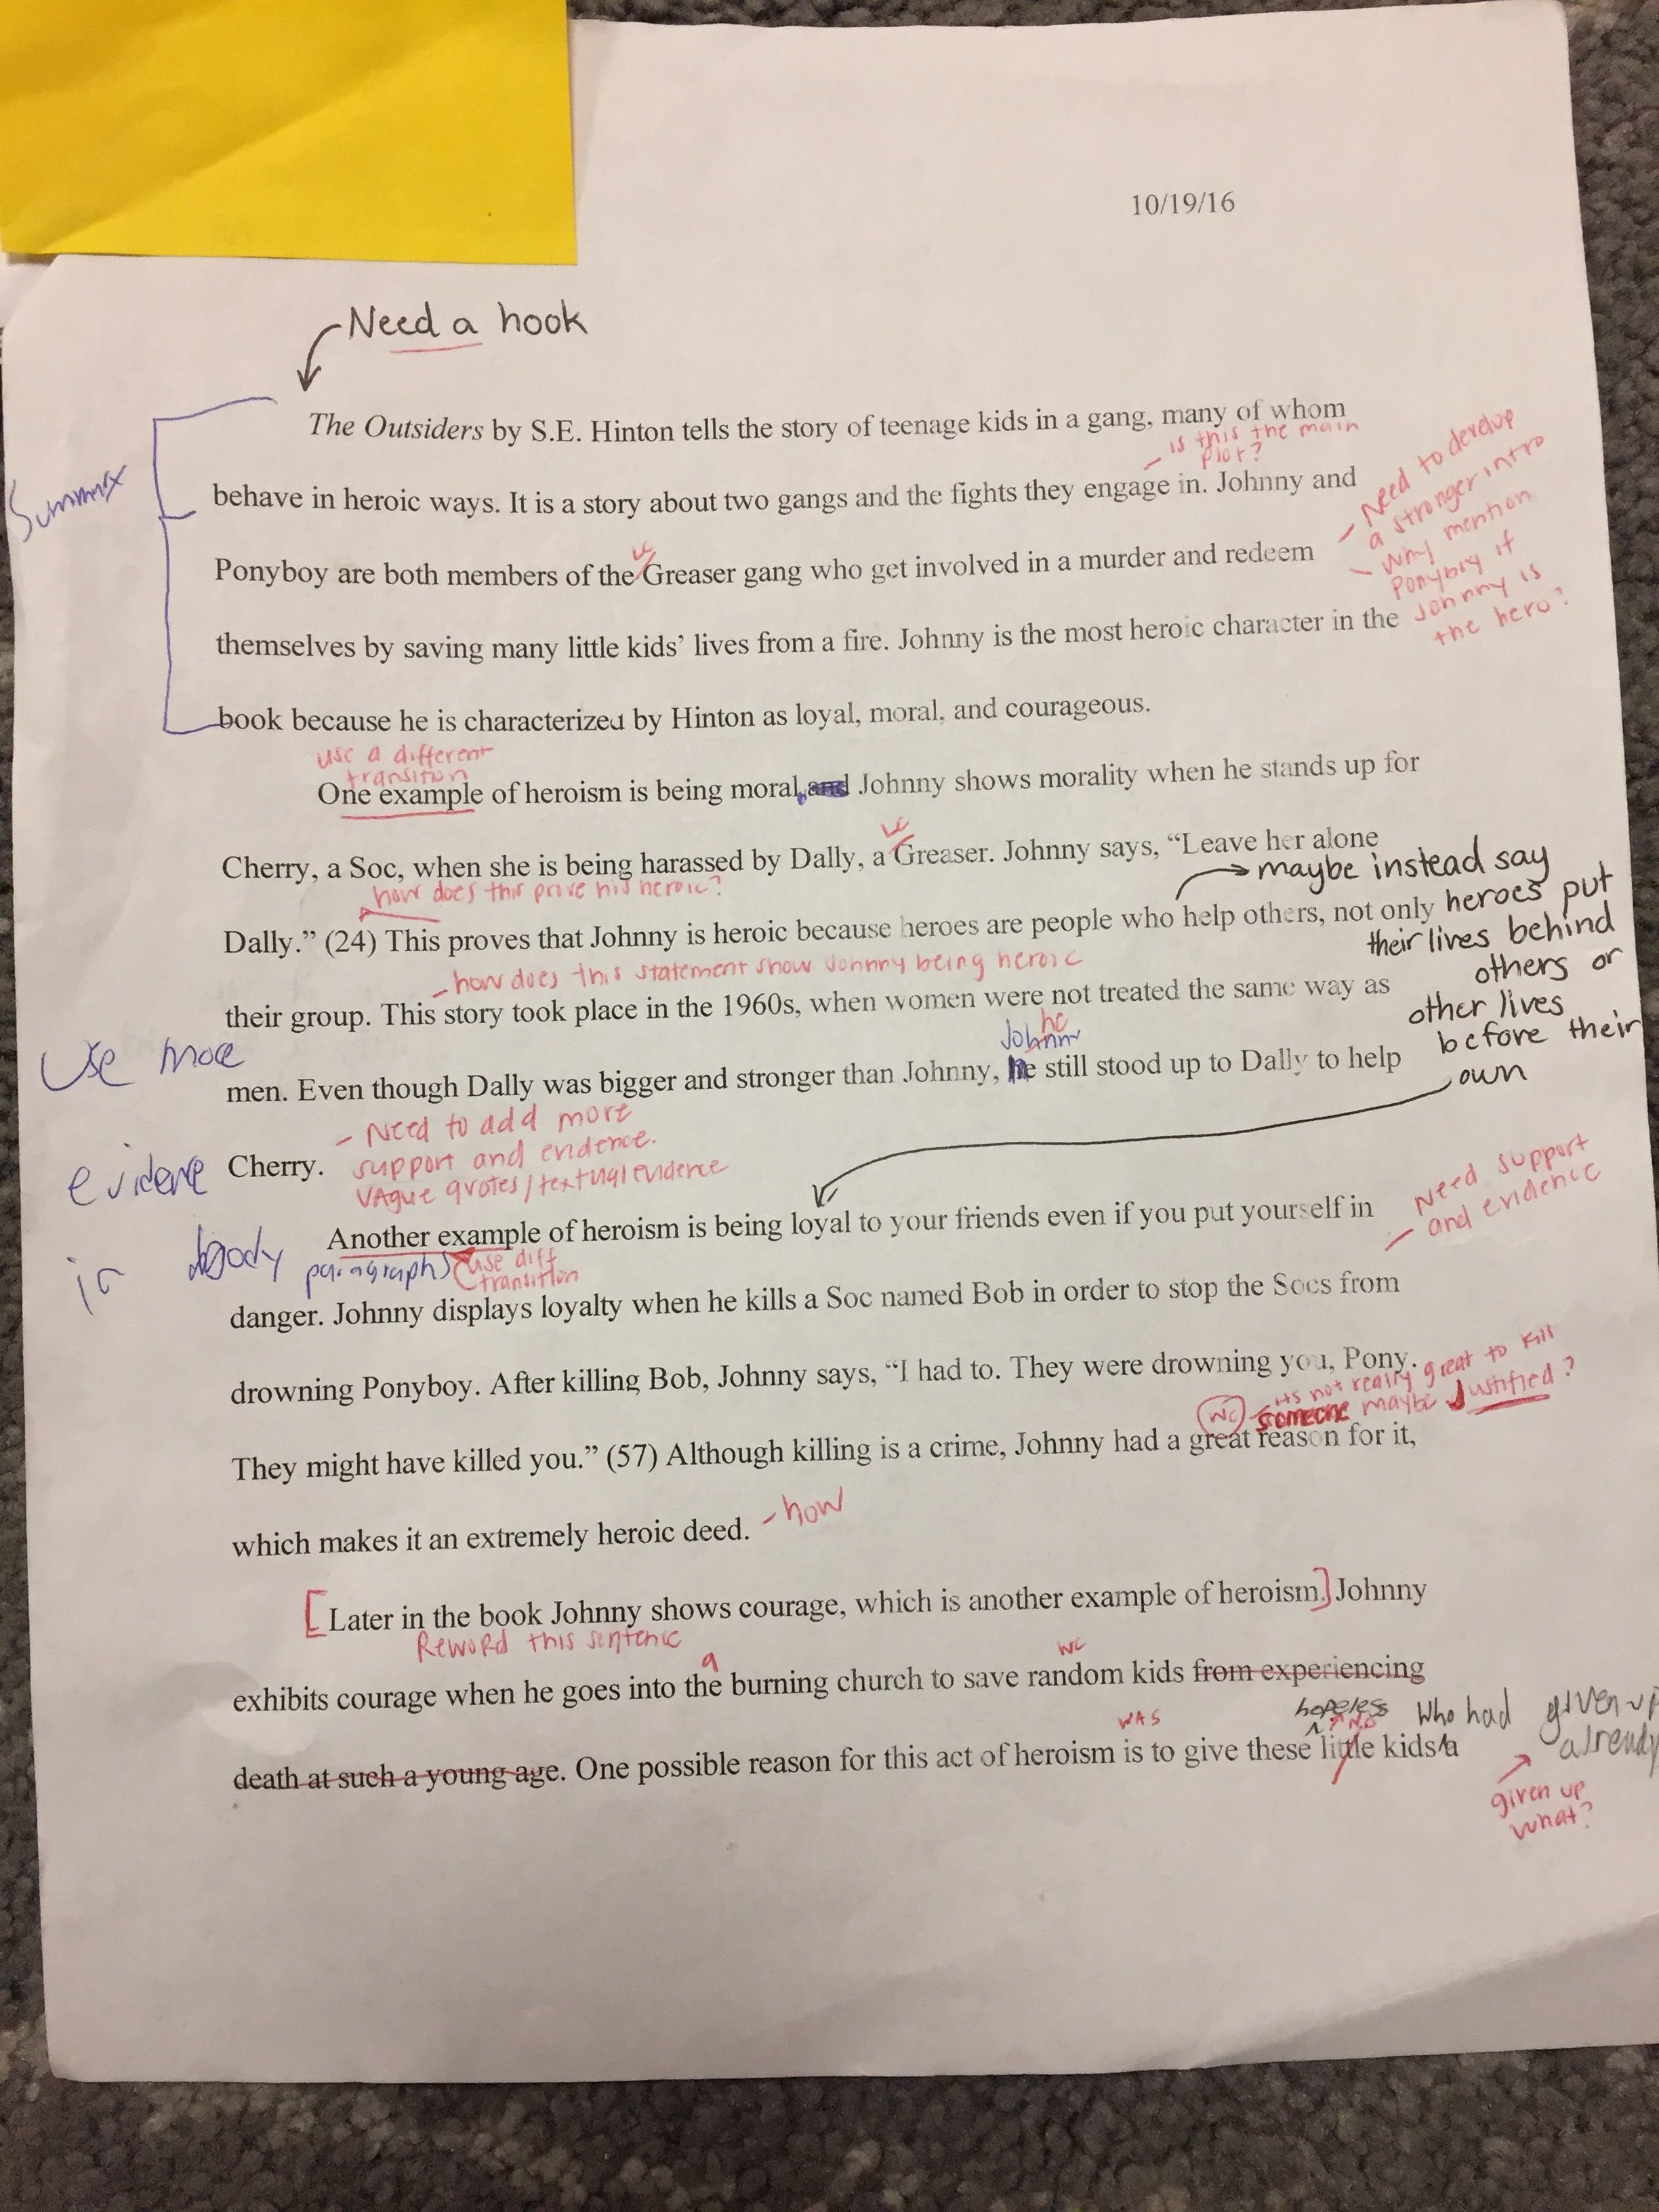 7th grade english i provided feedback for students on their first draft and allowed them time during class and time at home to make the necessary revisions